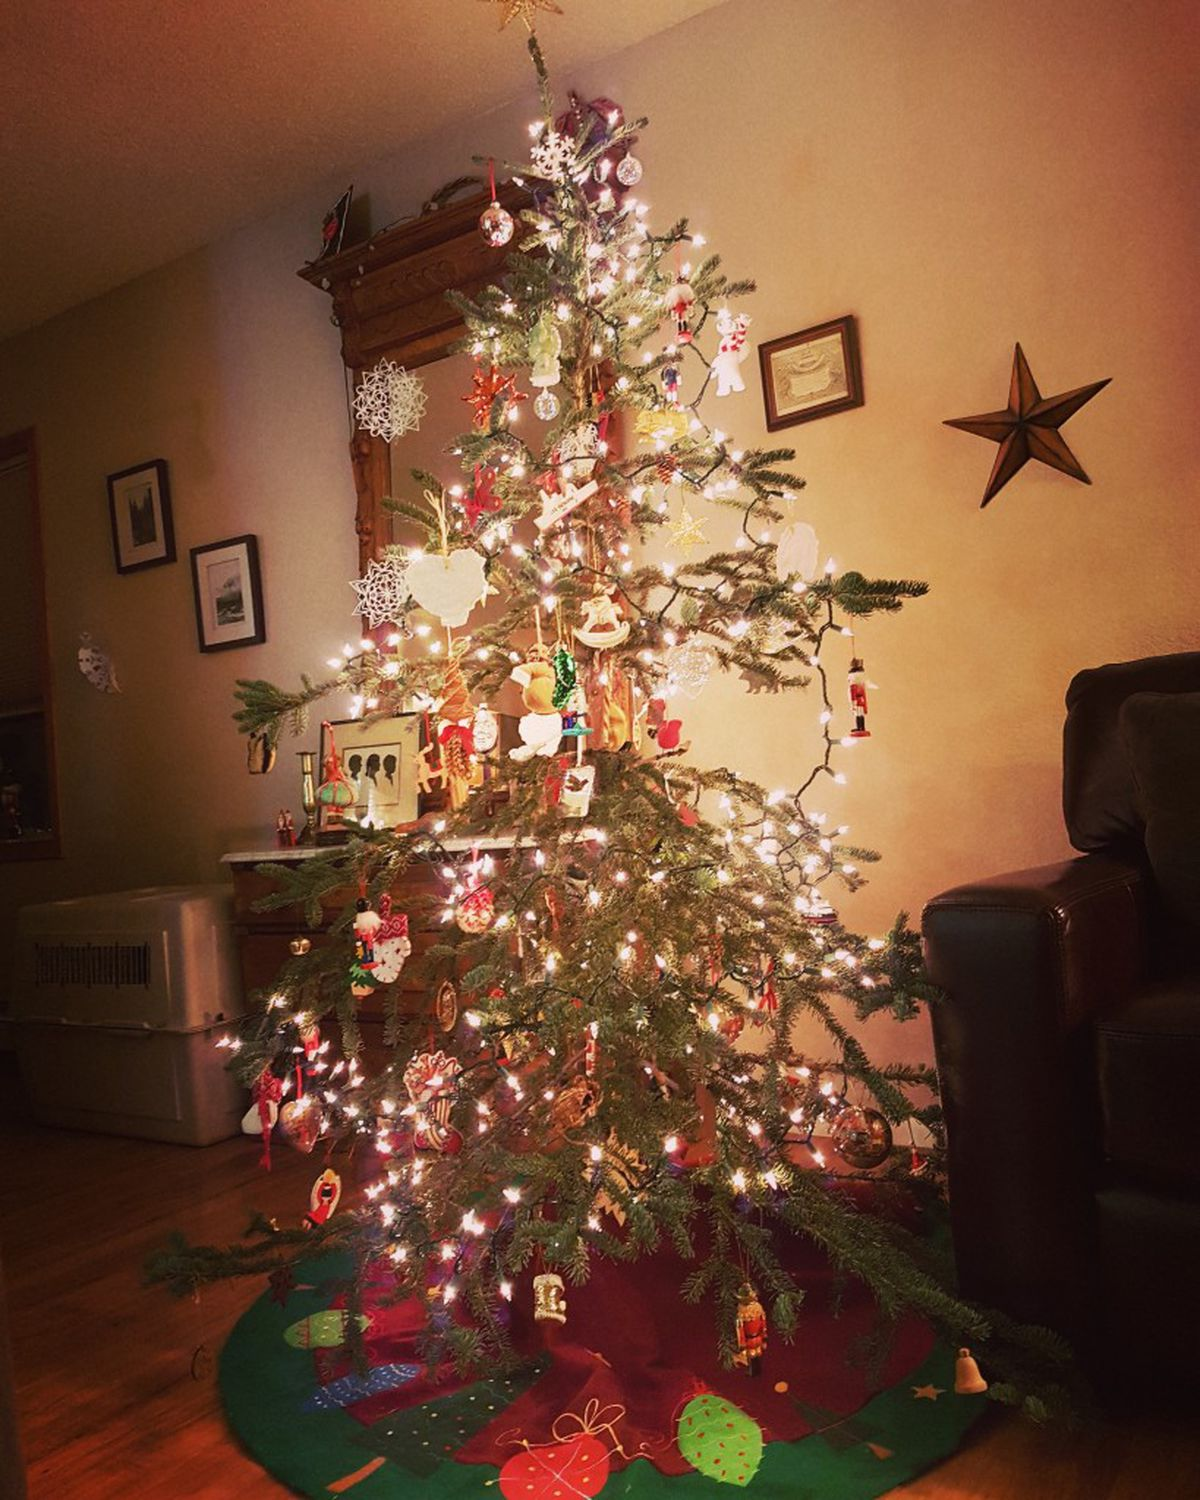 A recent Christmas tree at the Kirkland home, fresh from the Chugach National Forest. (Erin Kirkland)